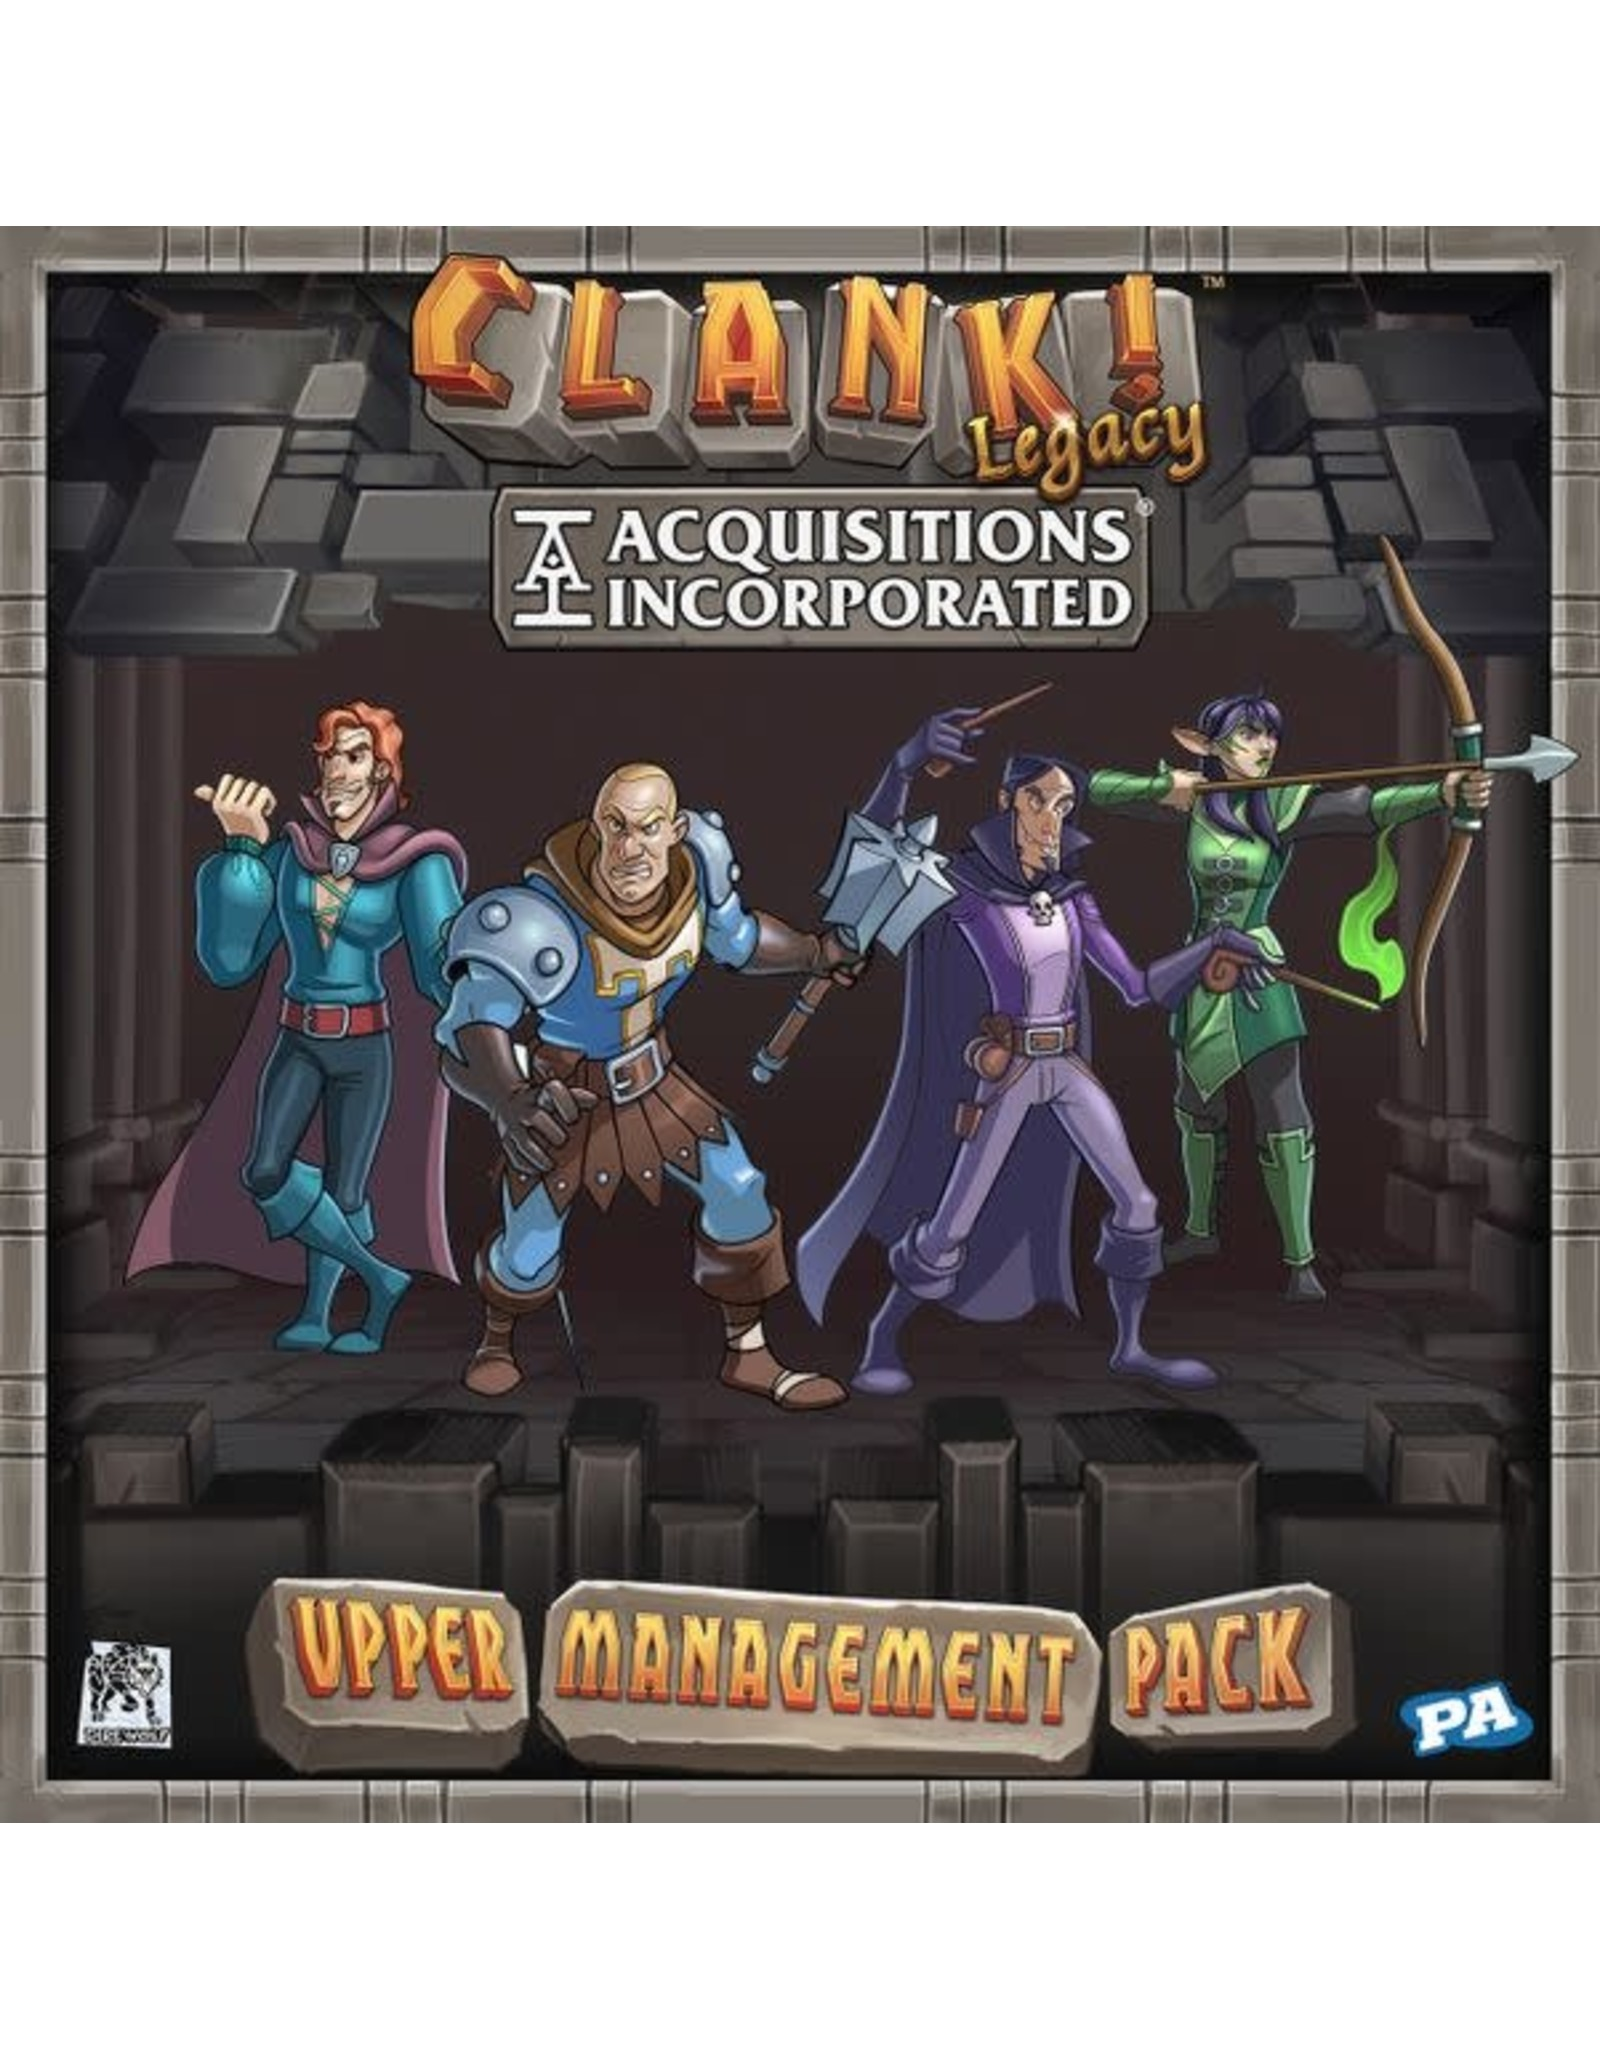 Renegade Game Studios Clank!: Legacy - Acquisitions Incorporated - Upper Management Pack